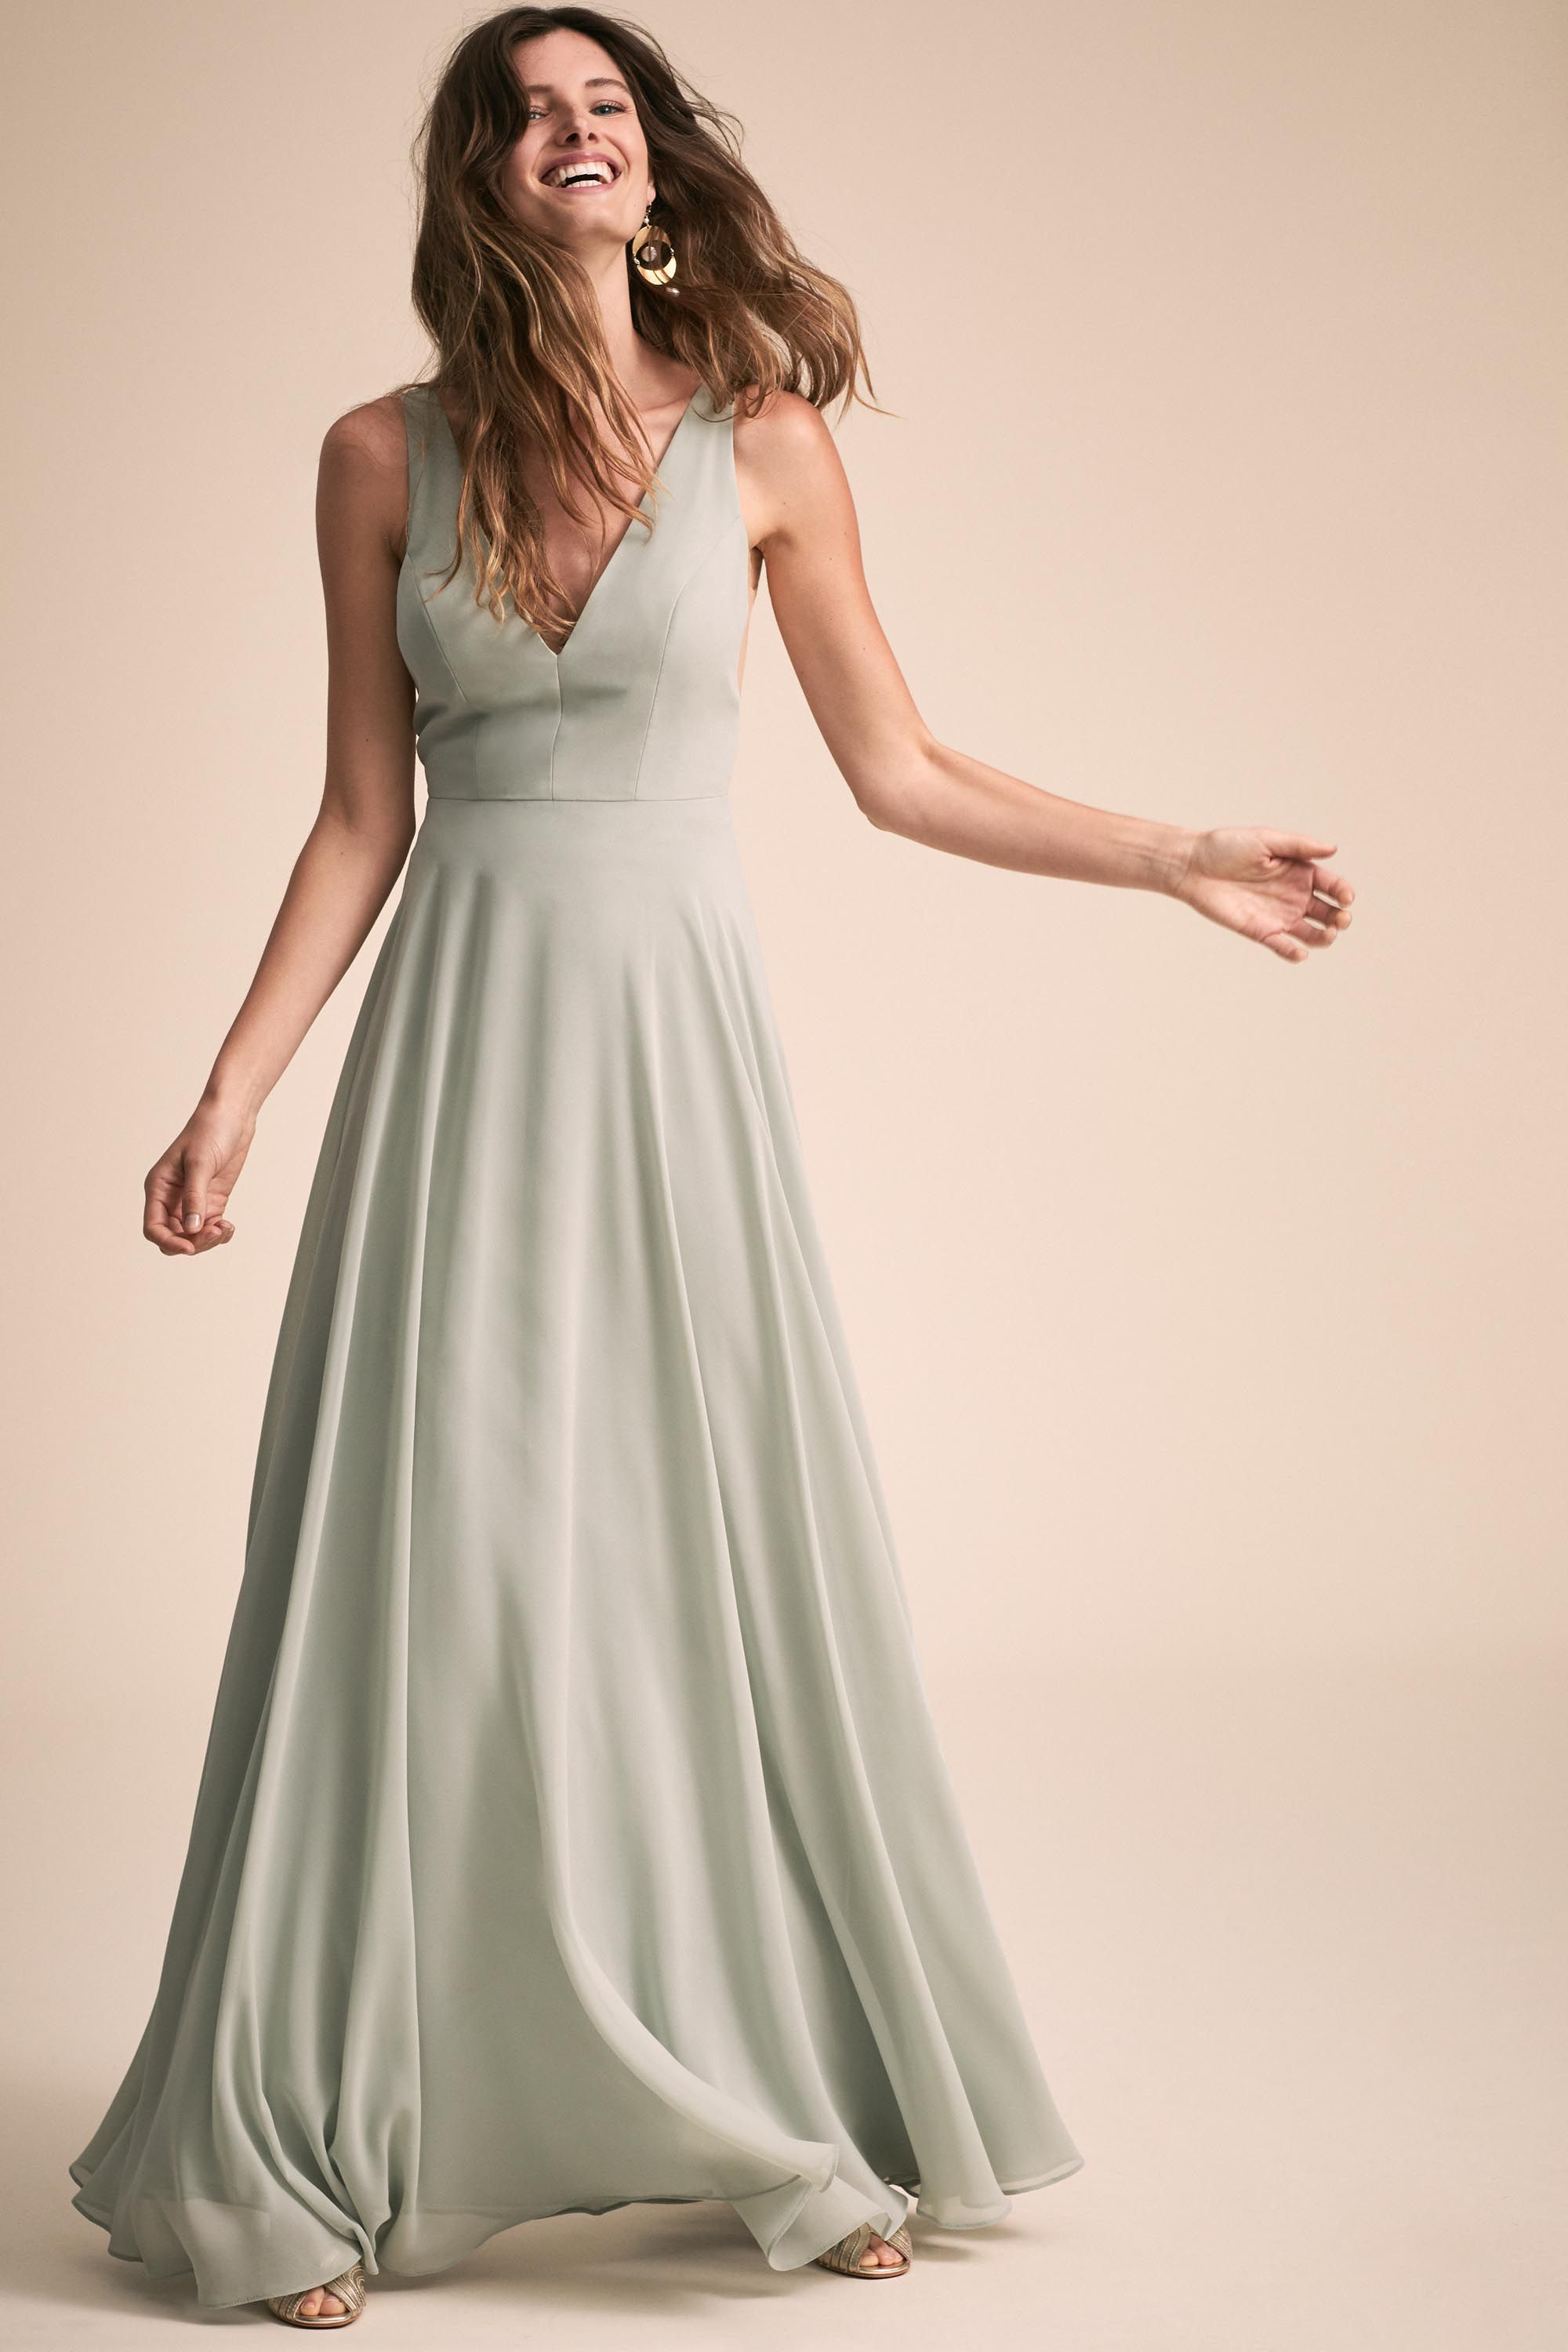 b9754a5be63 Colby Dress Whipped Apricot in Sale